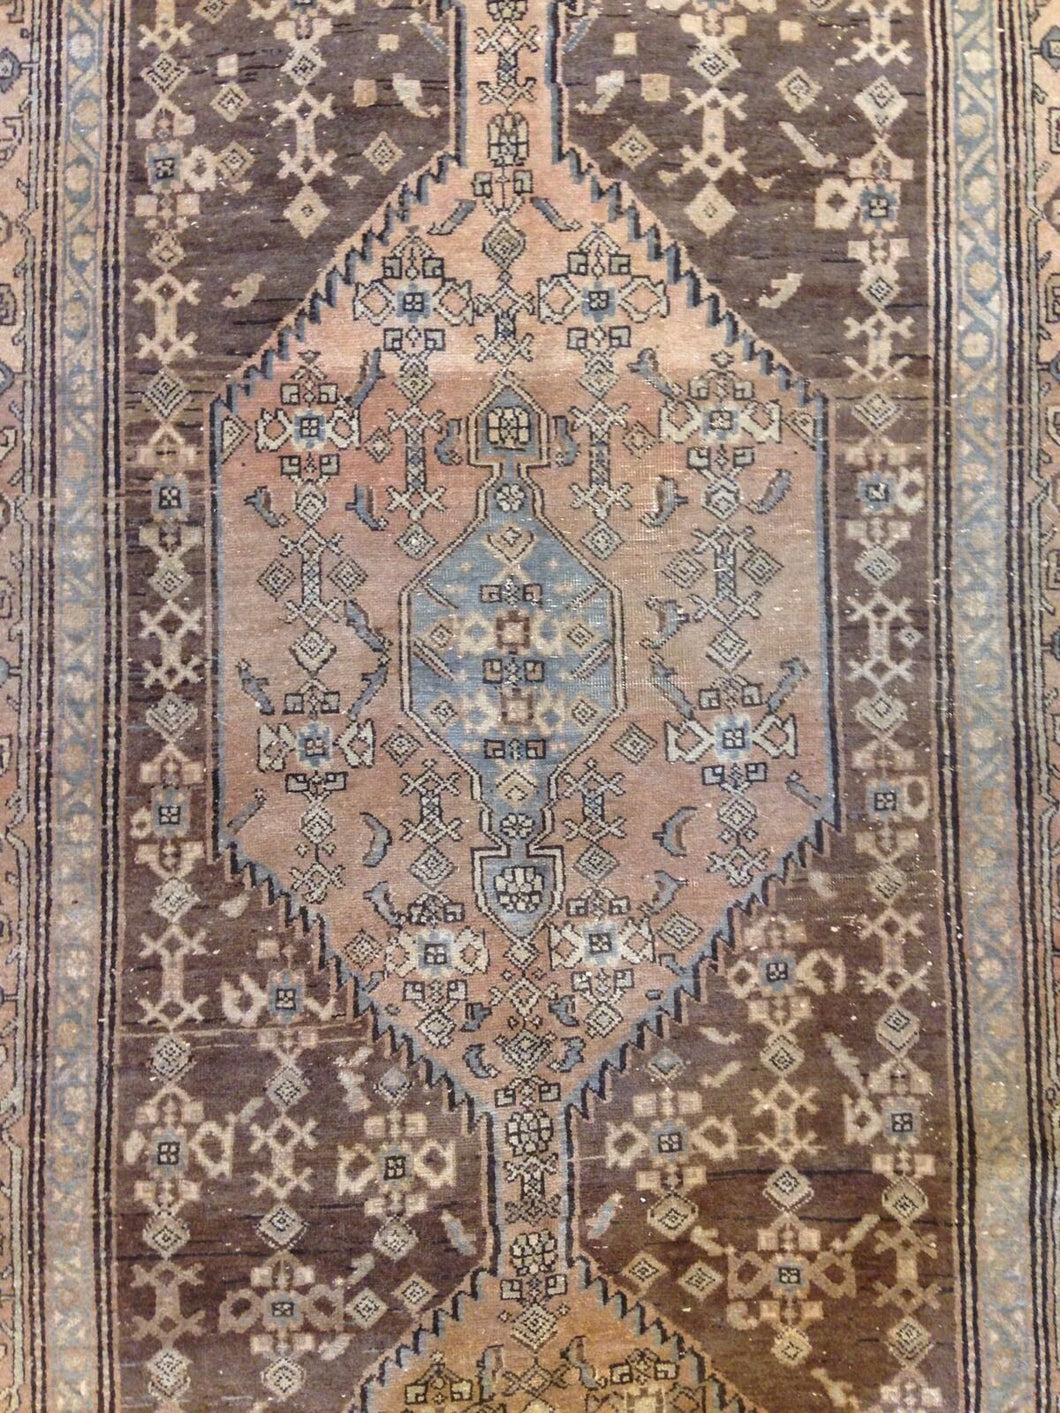 Marvelous Malayer - 1940s Antique Persian Rug - Gallery Runner - 4'8